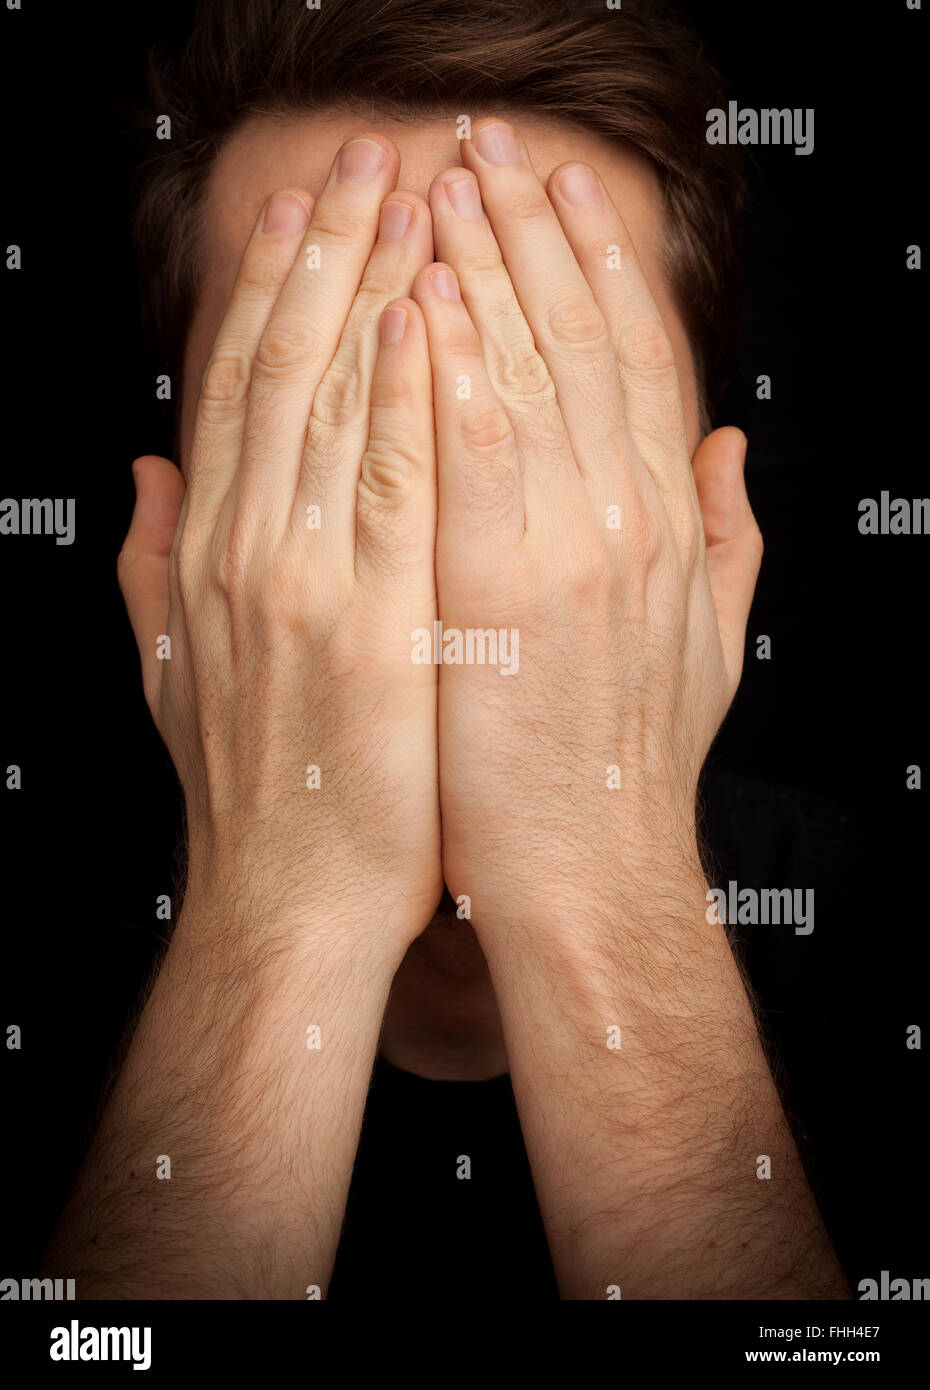 covering face with hands man covering face dark stock photos man covering face 9743